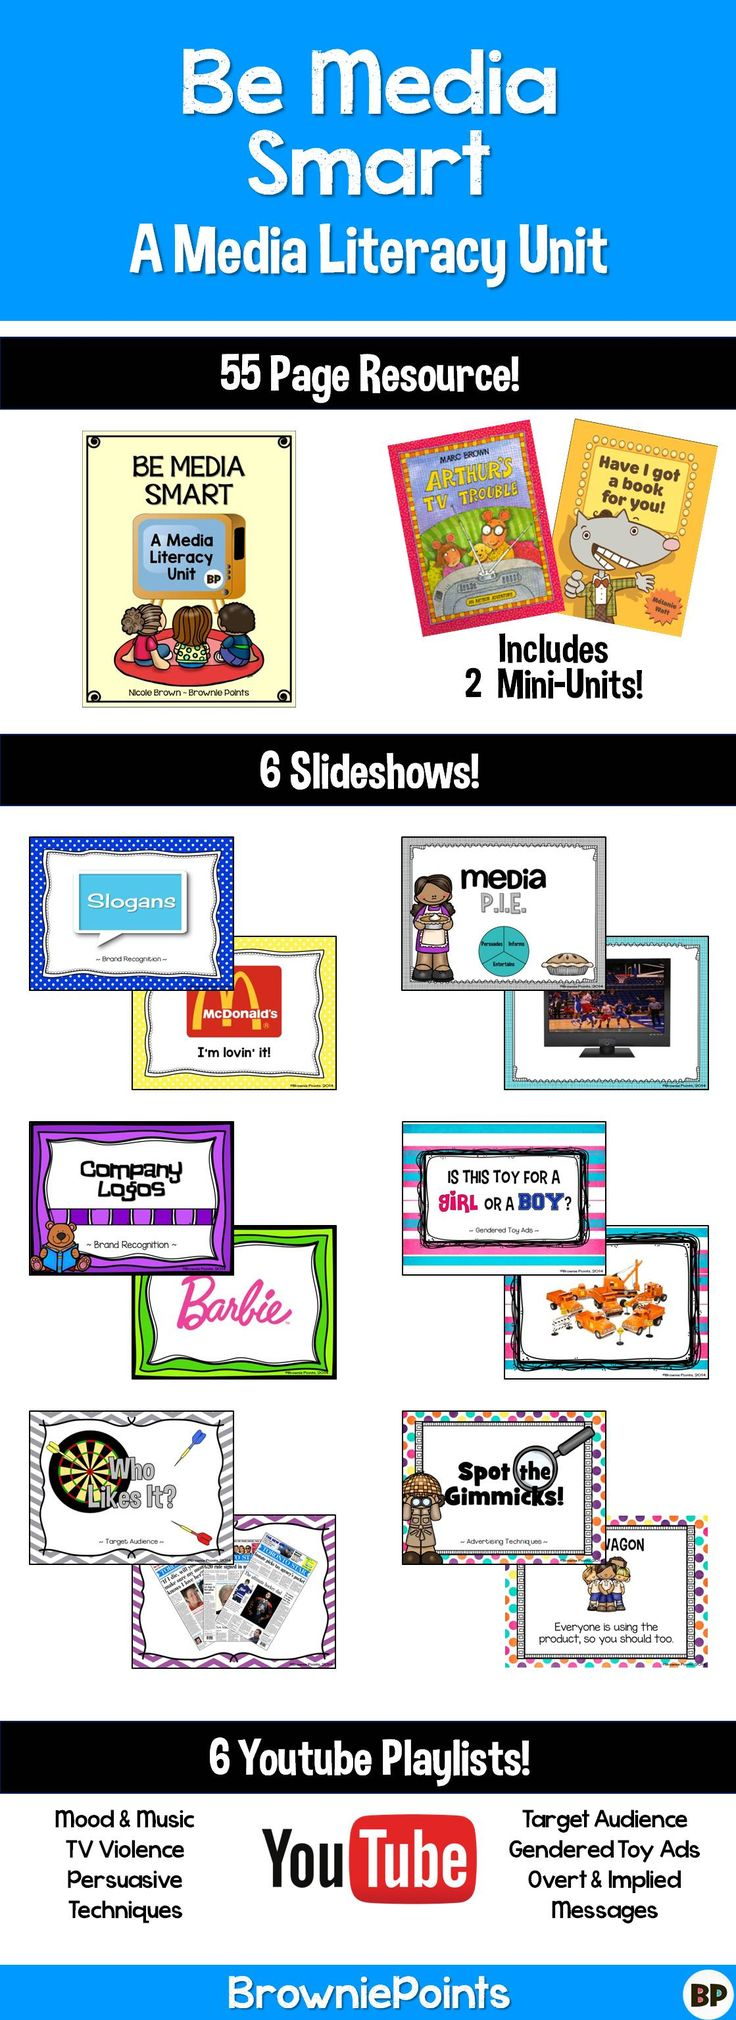 A Media Literacy Unit Includes worksheets, literature connections, 6 Slideshows, and 6 YouTube playlists!